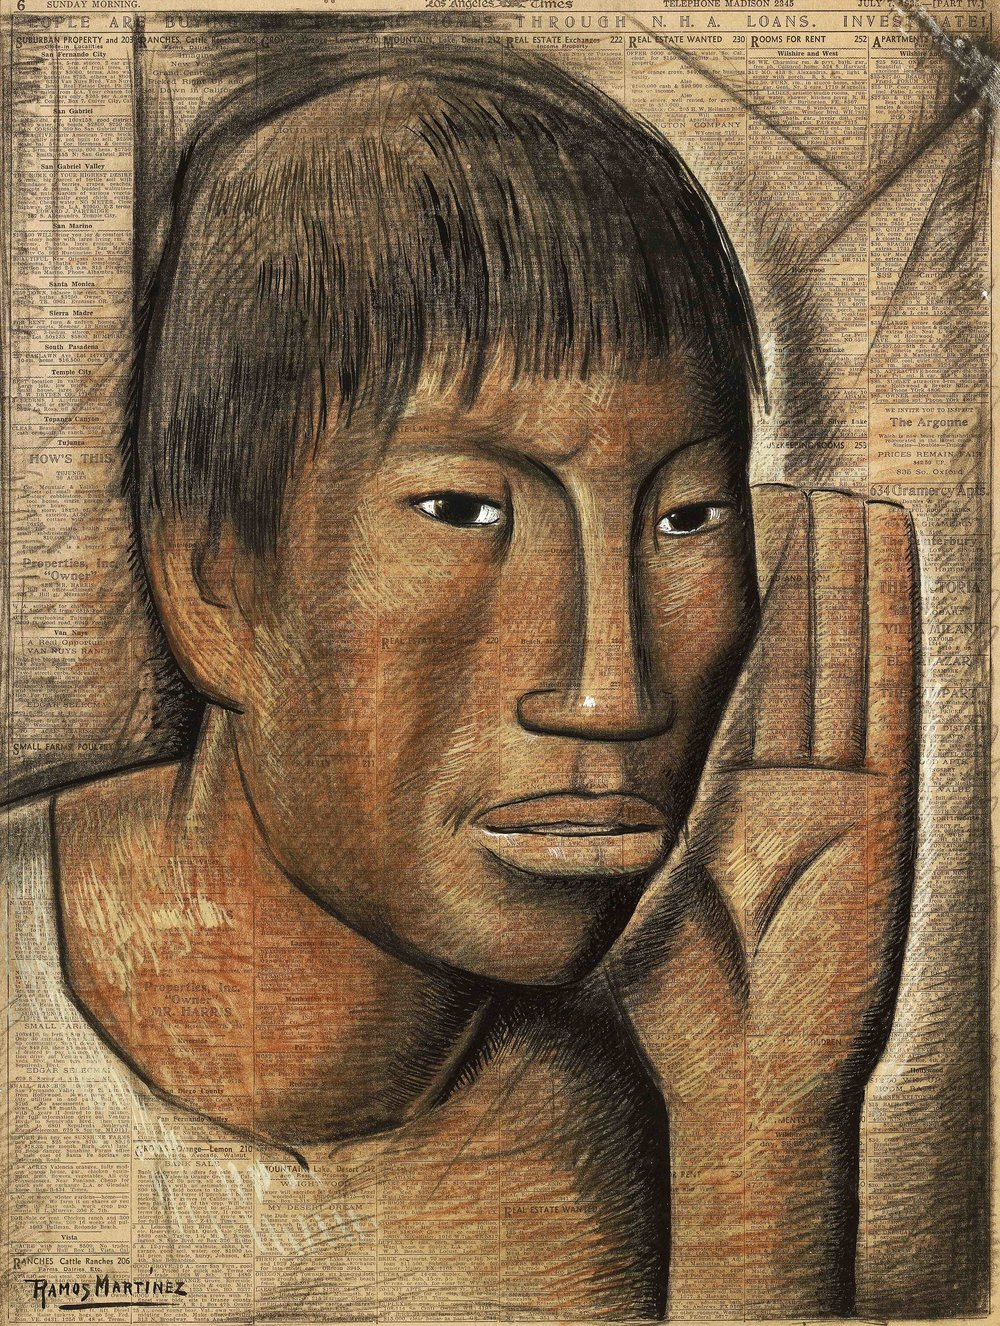 Cabeza de Joven / Head of a Young Man  1935 tempera and Conté crayon on newsprint / temple y crayon Conté sobre papel periódico (Los Angeles Times, July 7, 1935) 23.1 x 17.5 inches; 58.8 x 44.5 centímetros Private collection